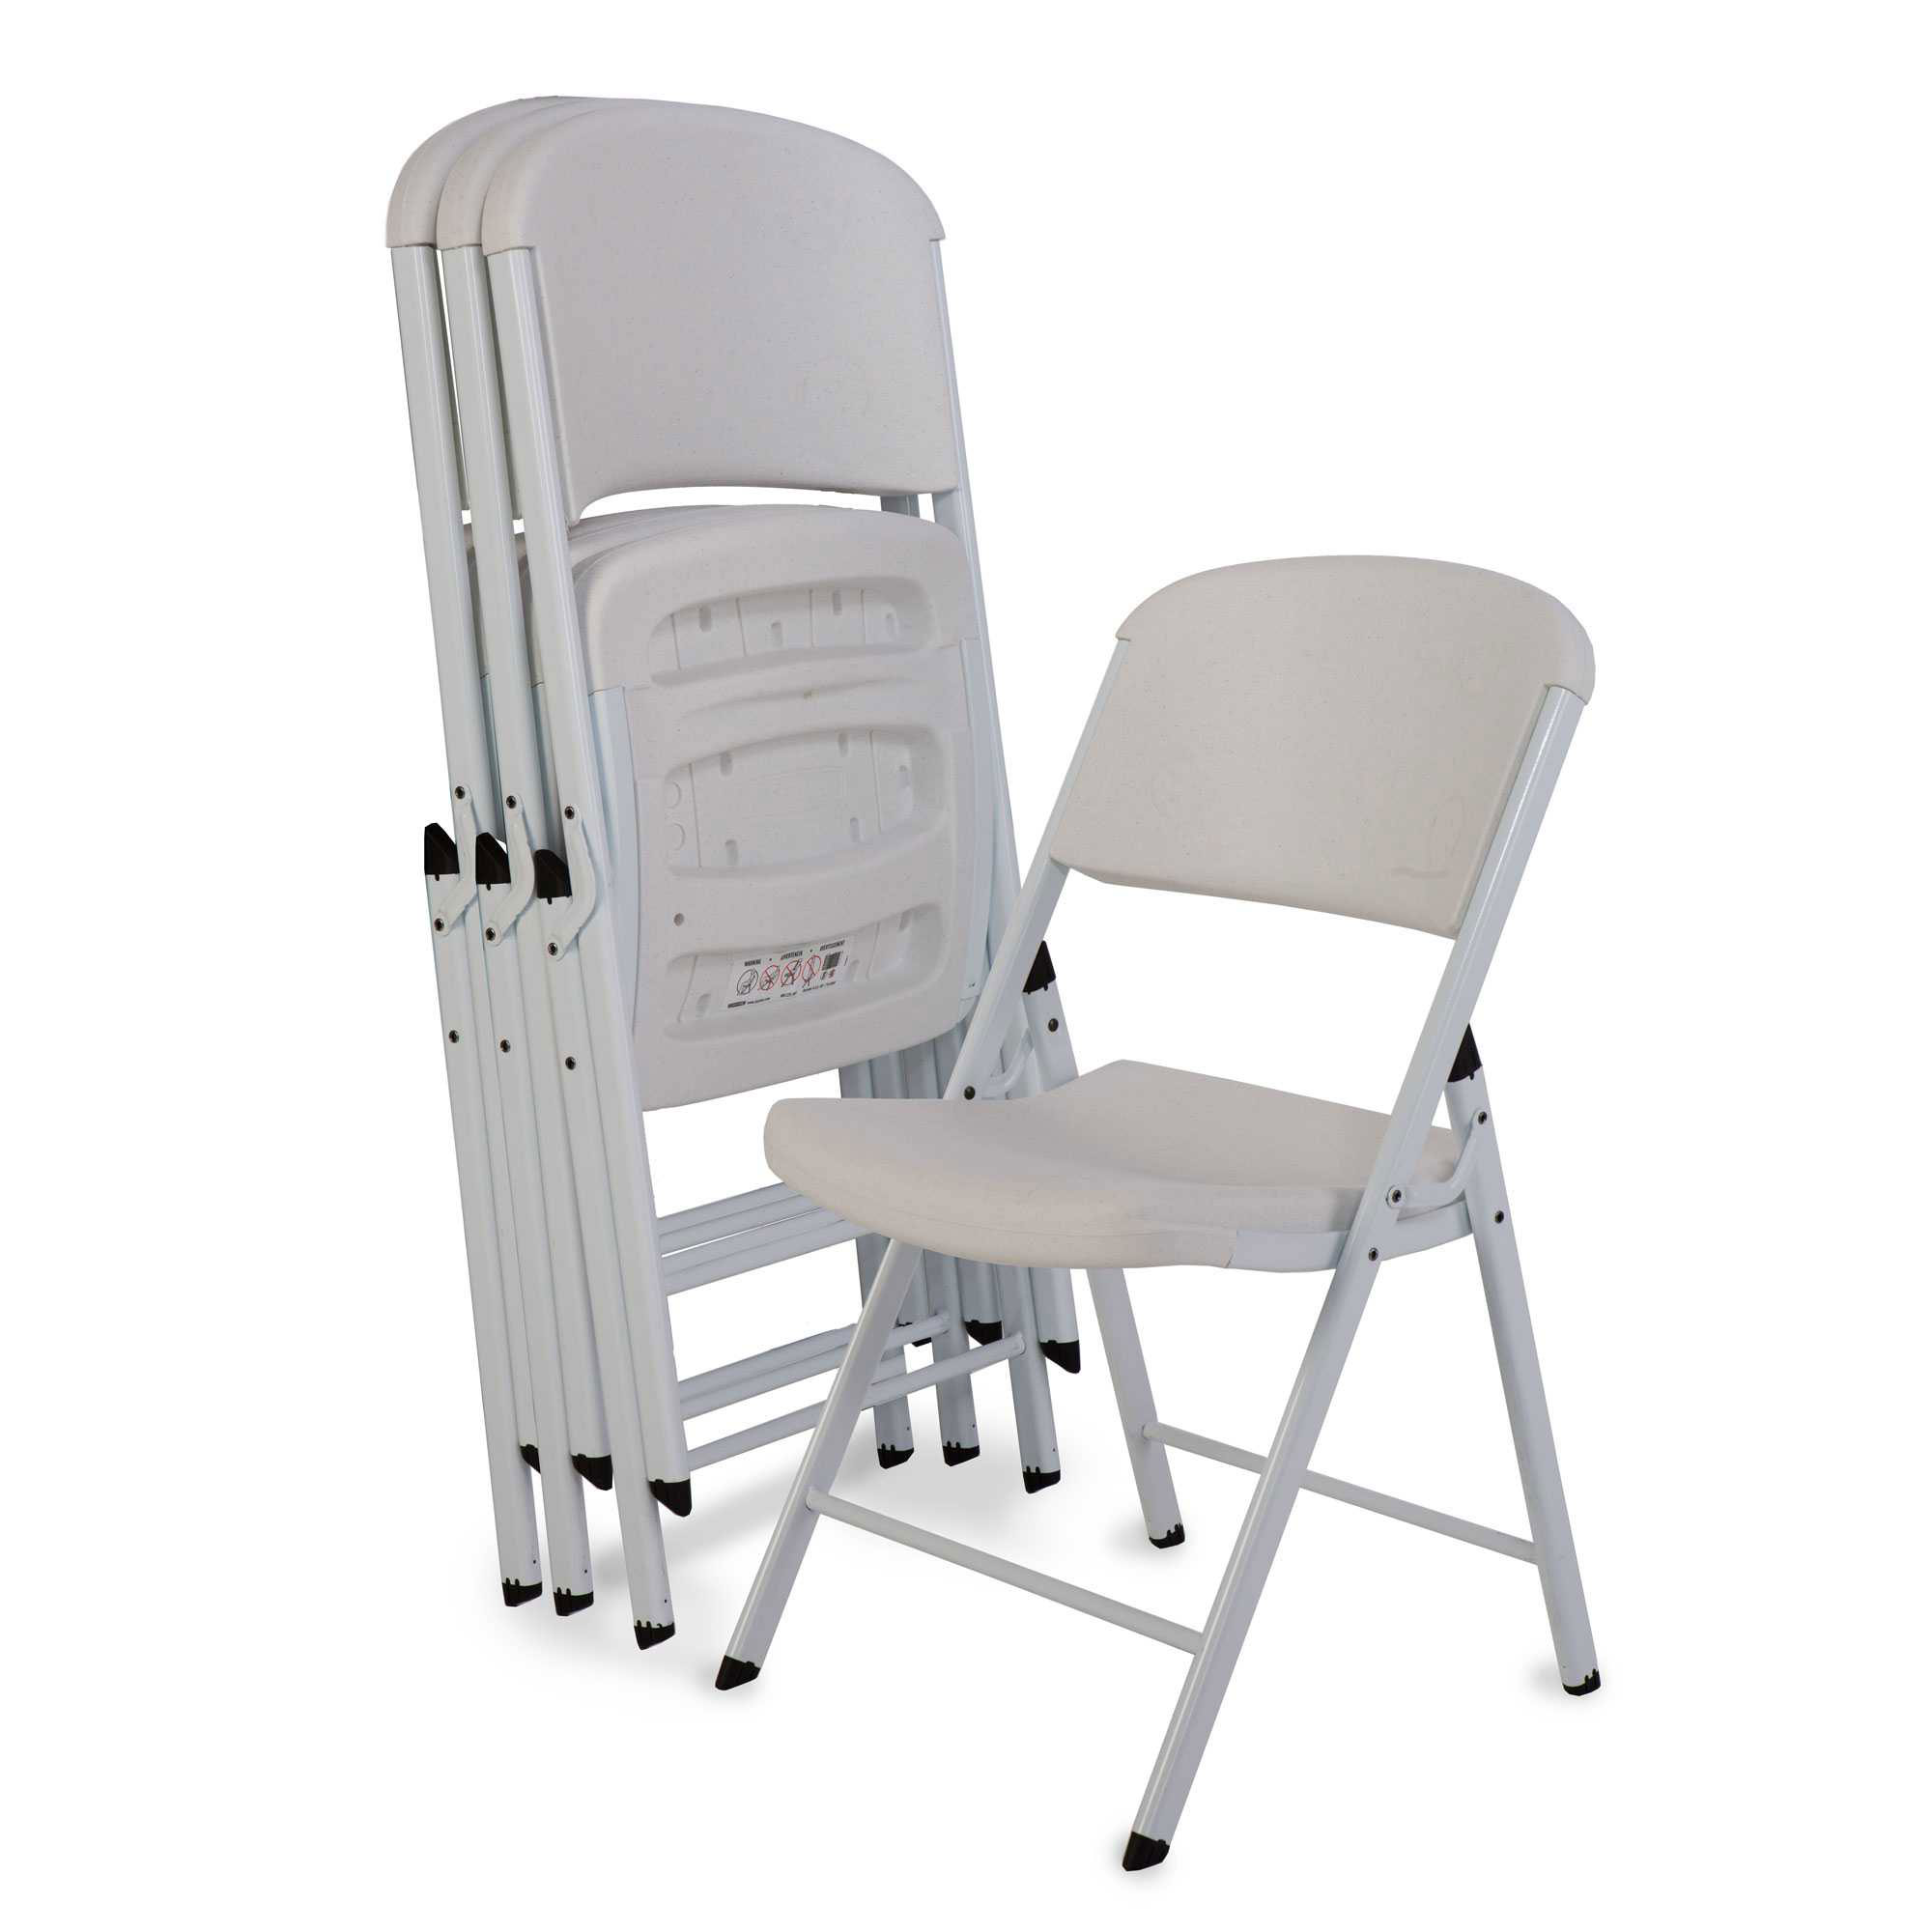 folding chair lifetime covers for chairs wedding 80359 white 32 pack on sale with